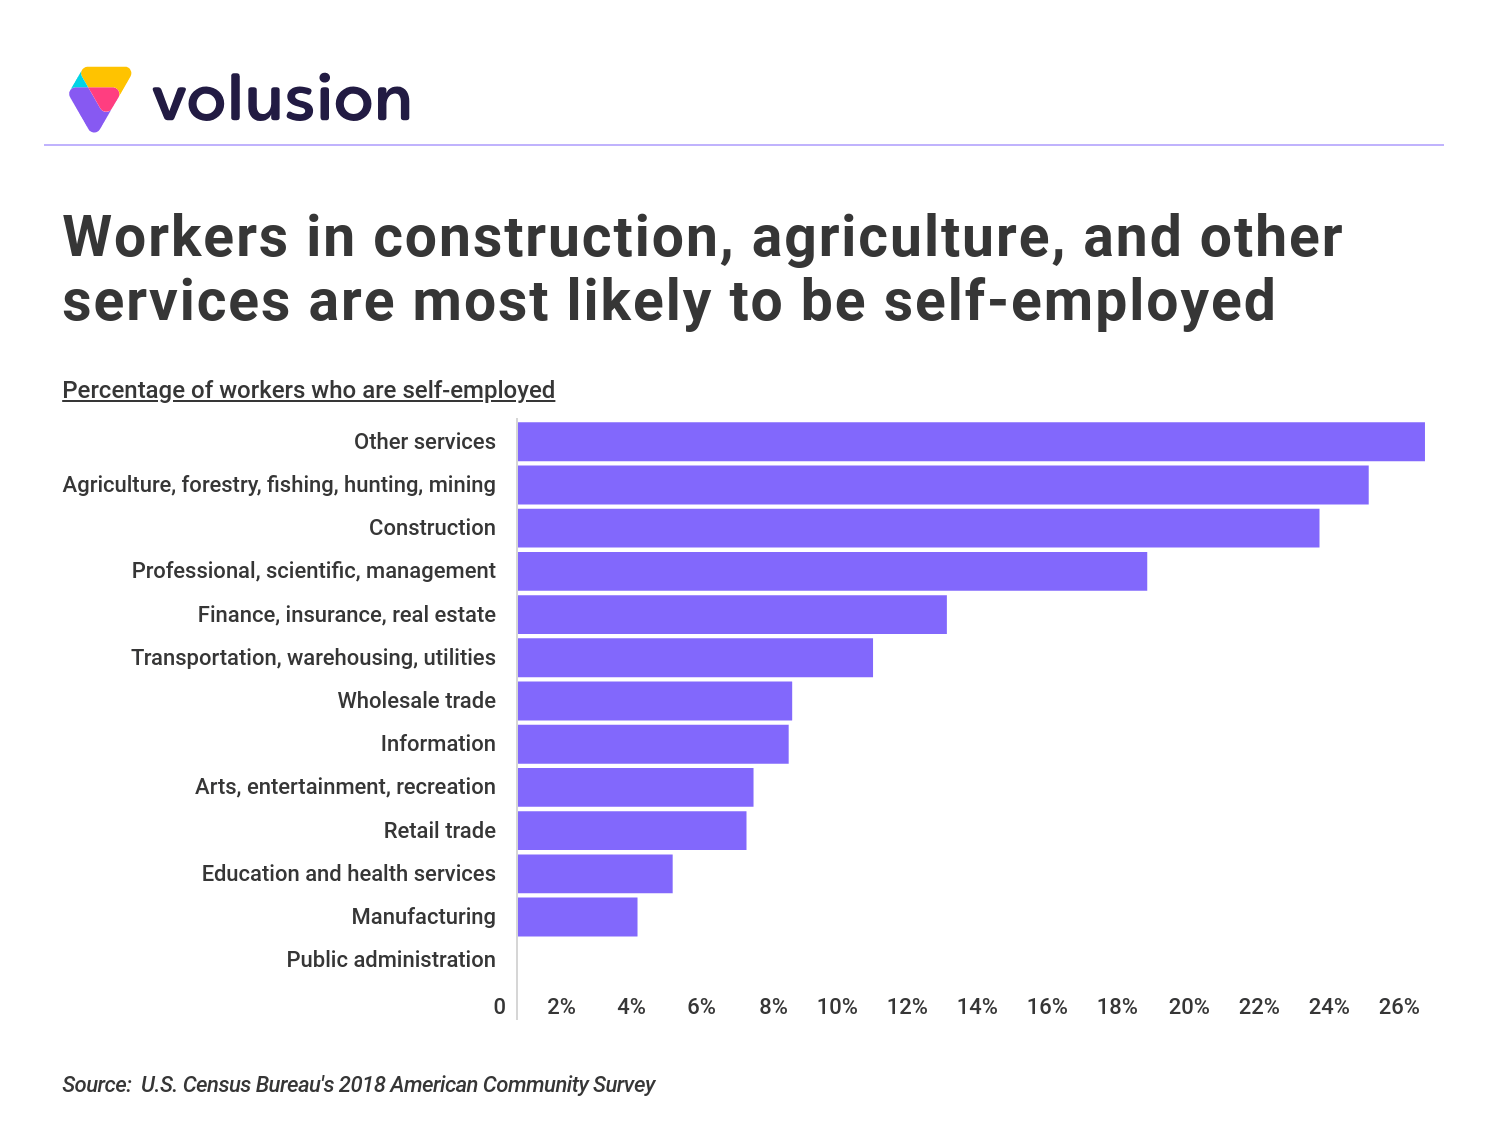 Chart demonstrating the likelihood of self-employment by industry type.